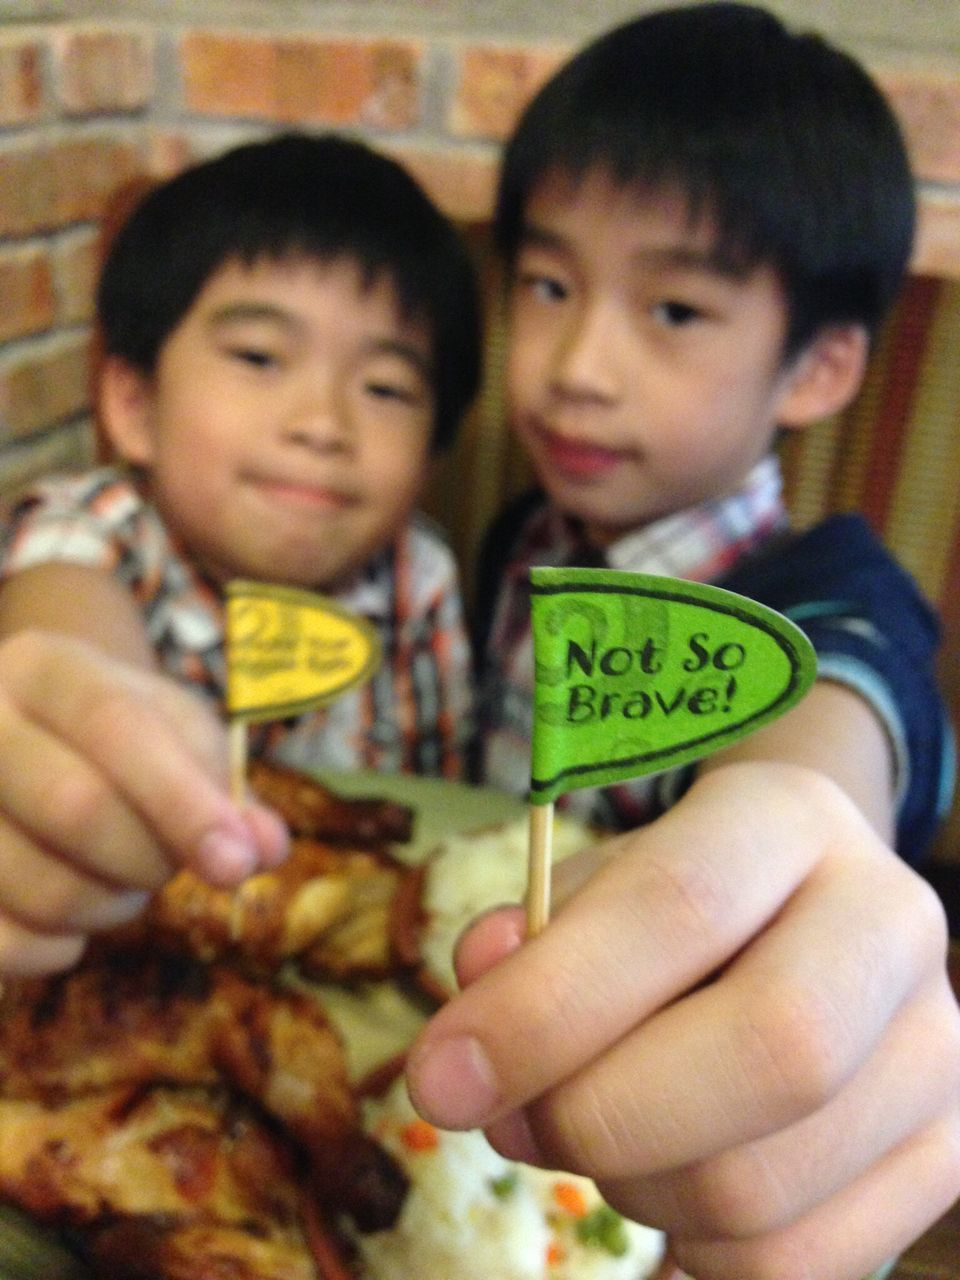 Portrait Of Boys Showing Message On Stick While Having Food At Table In Restaurant